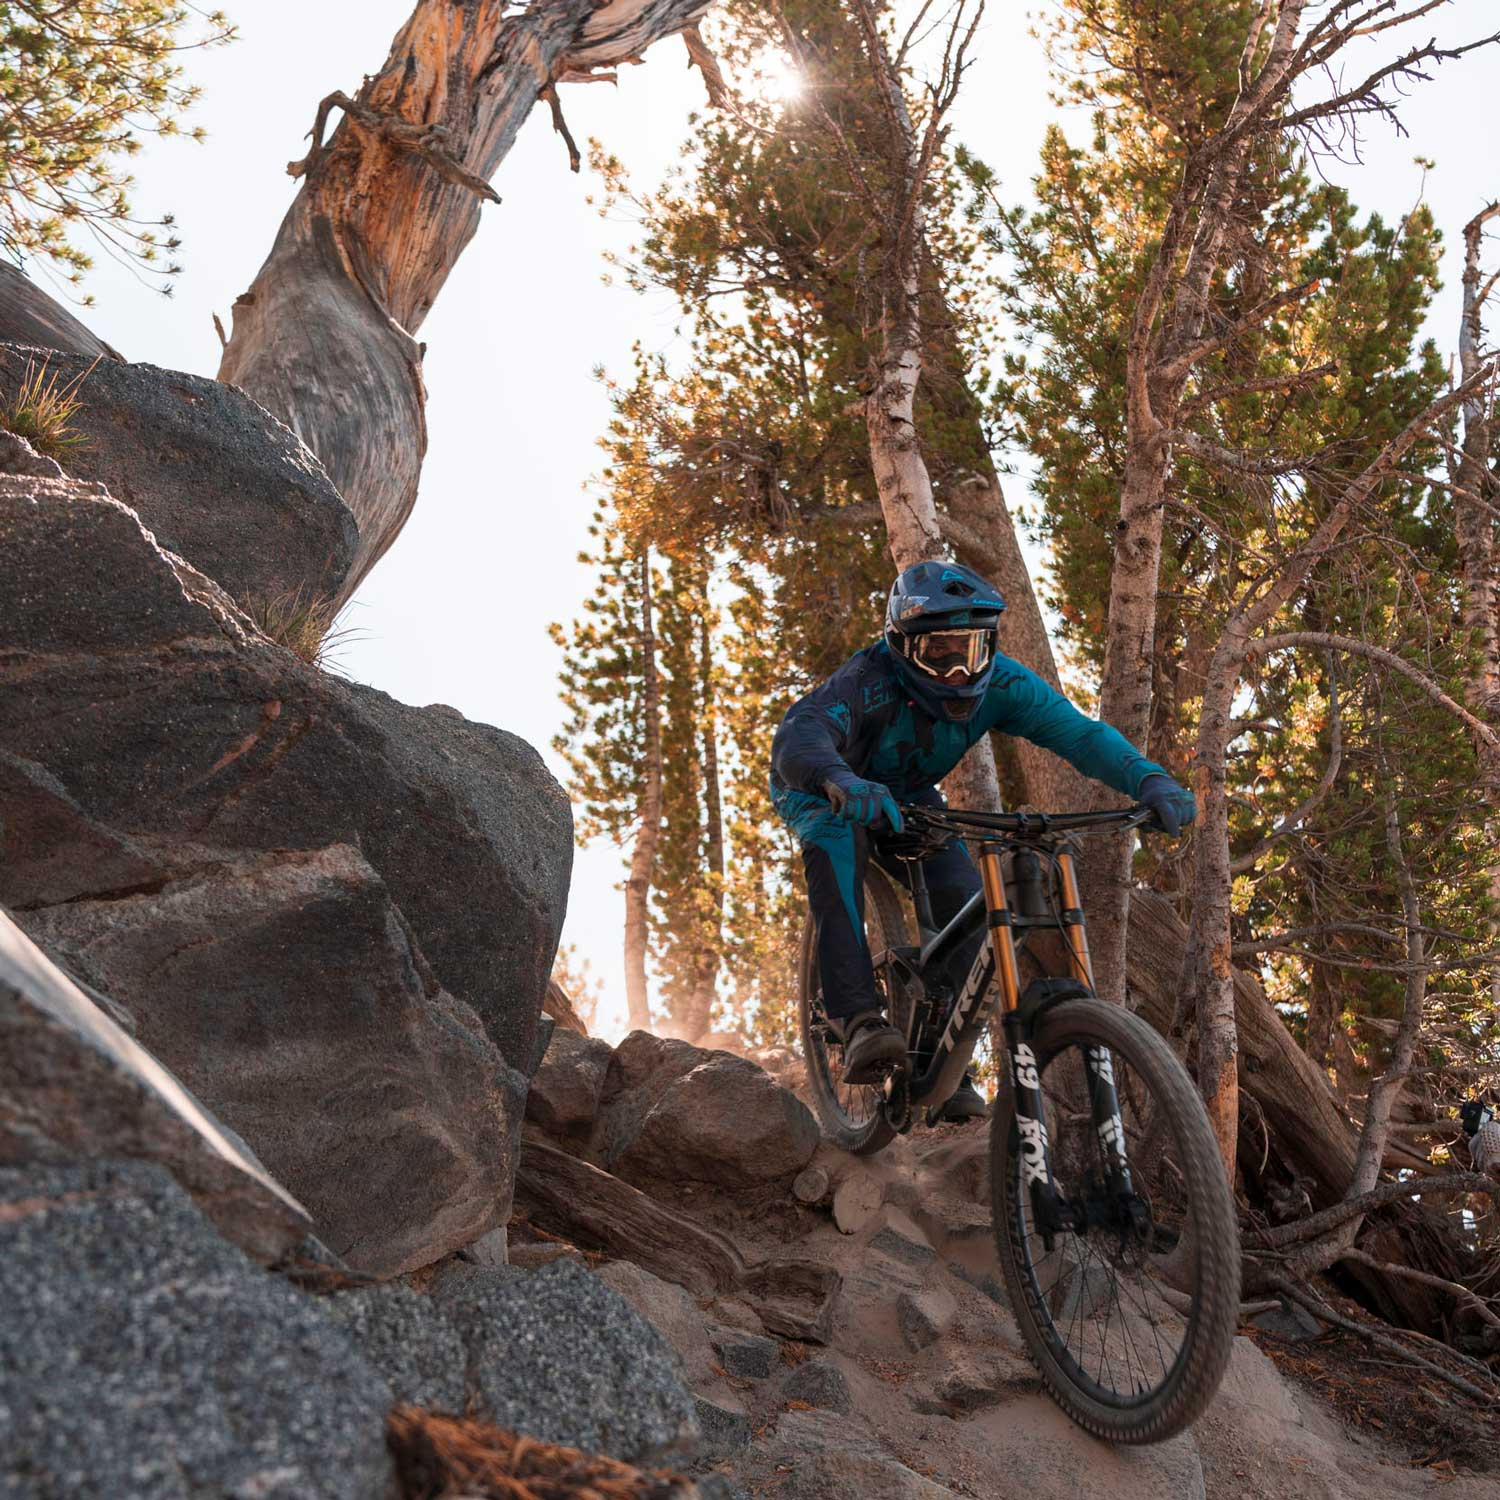 North American Bike Park Review Tour - Northstar Bike Park